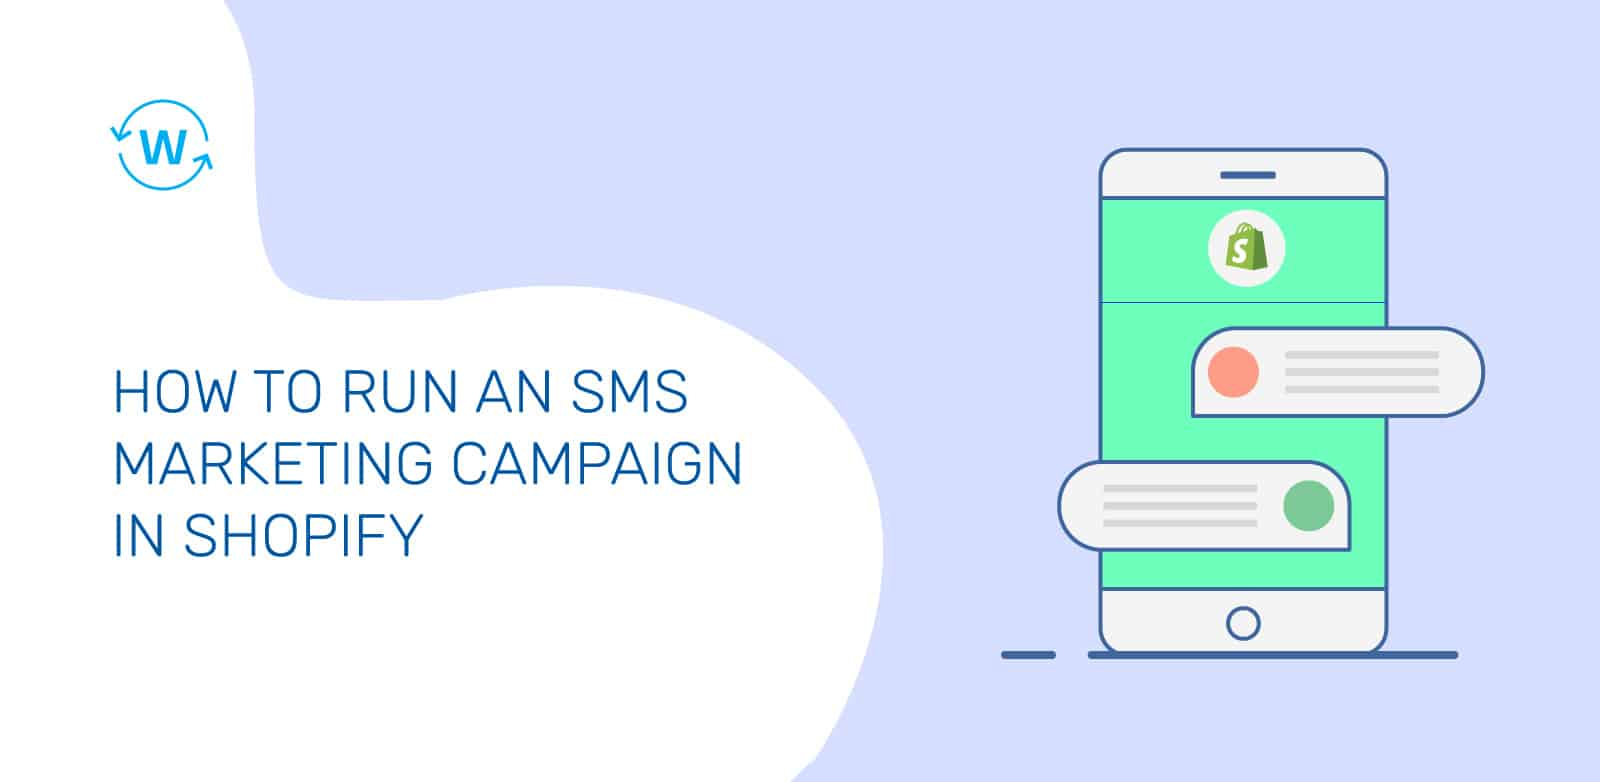 How to Run an SMS Marketing Campaign in Shopify